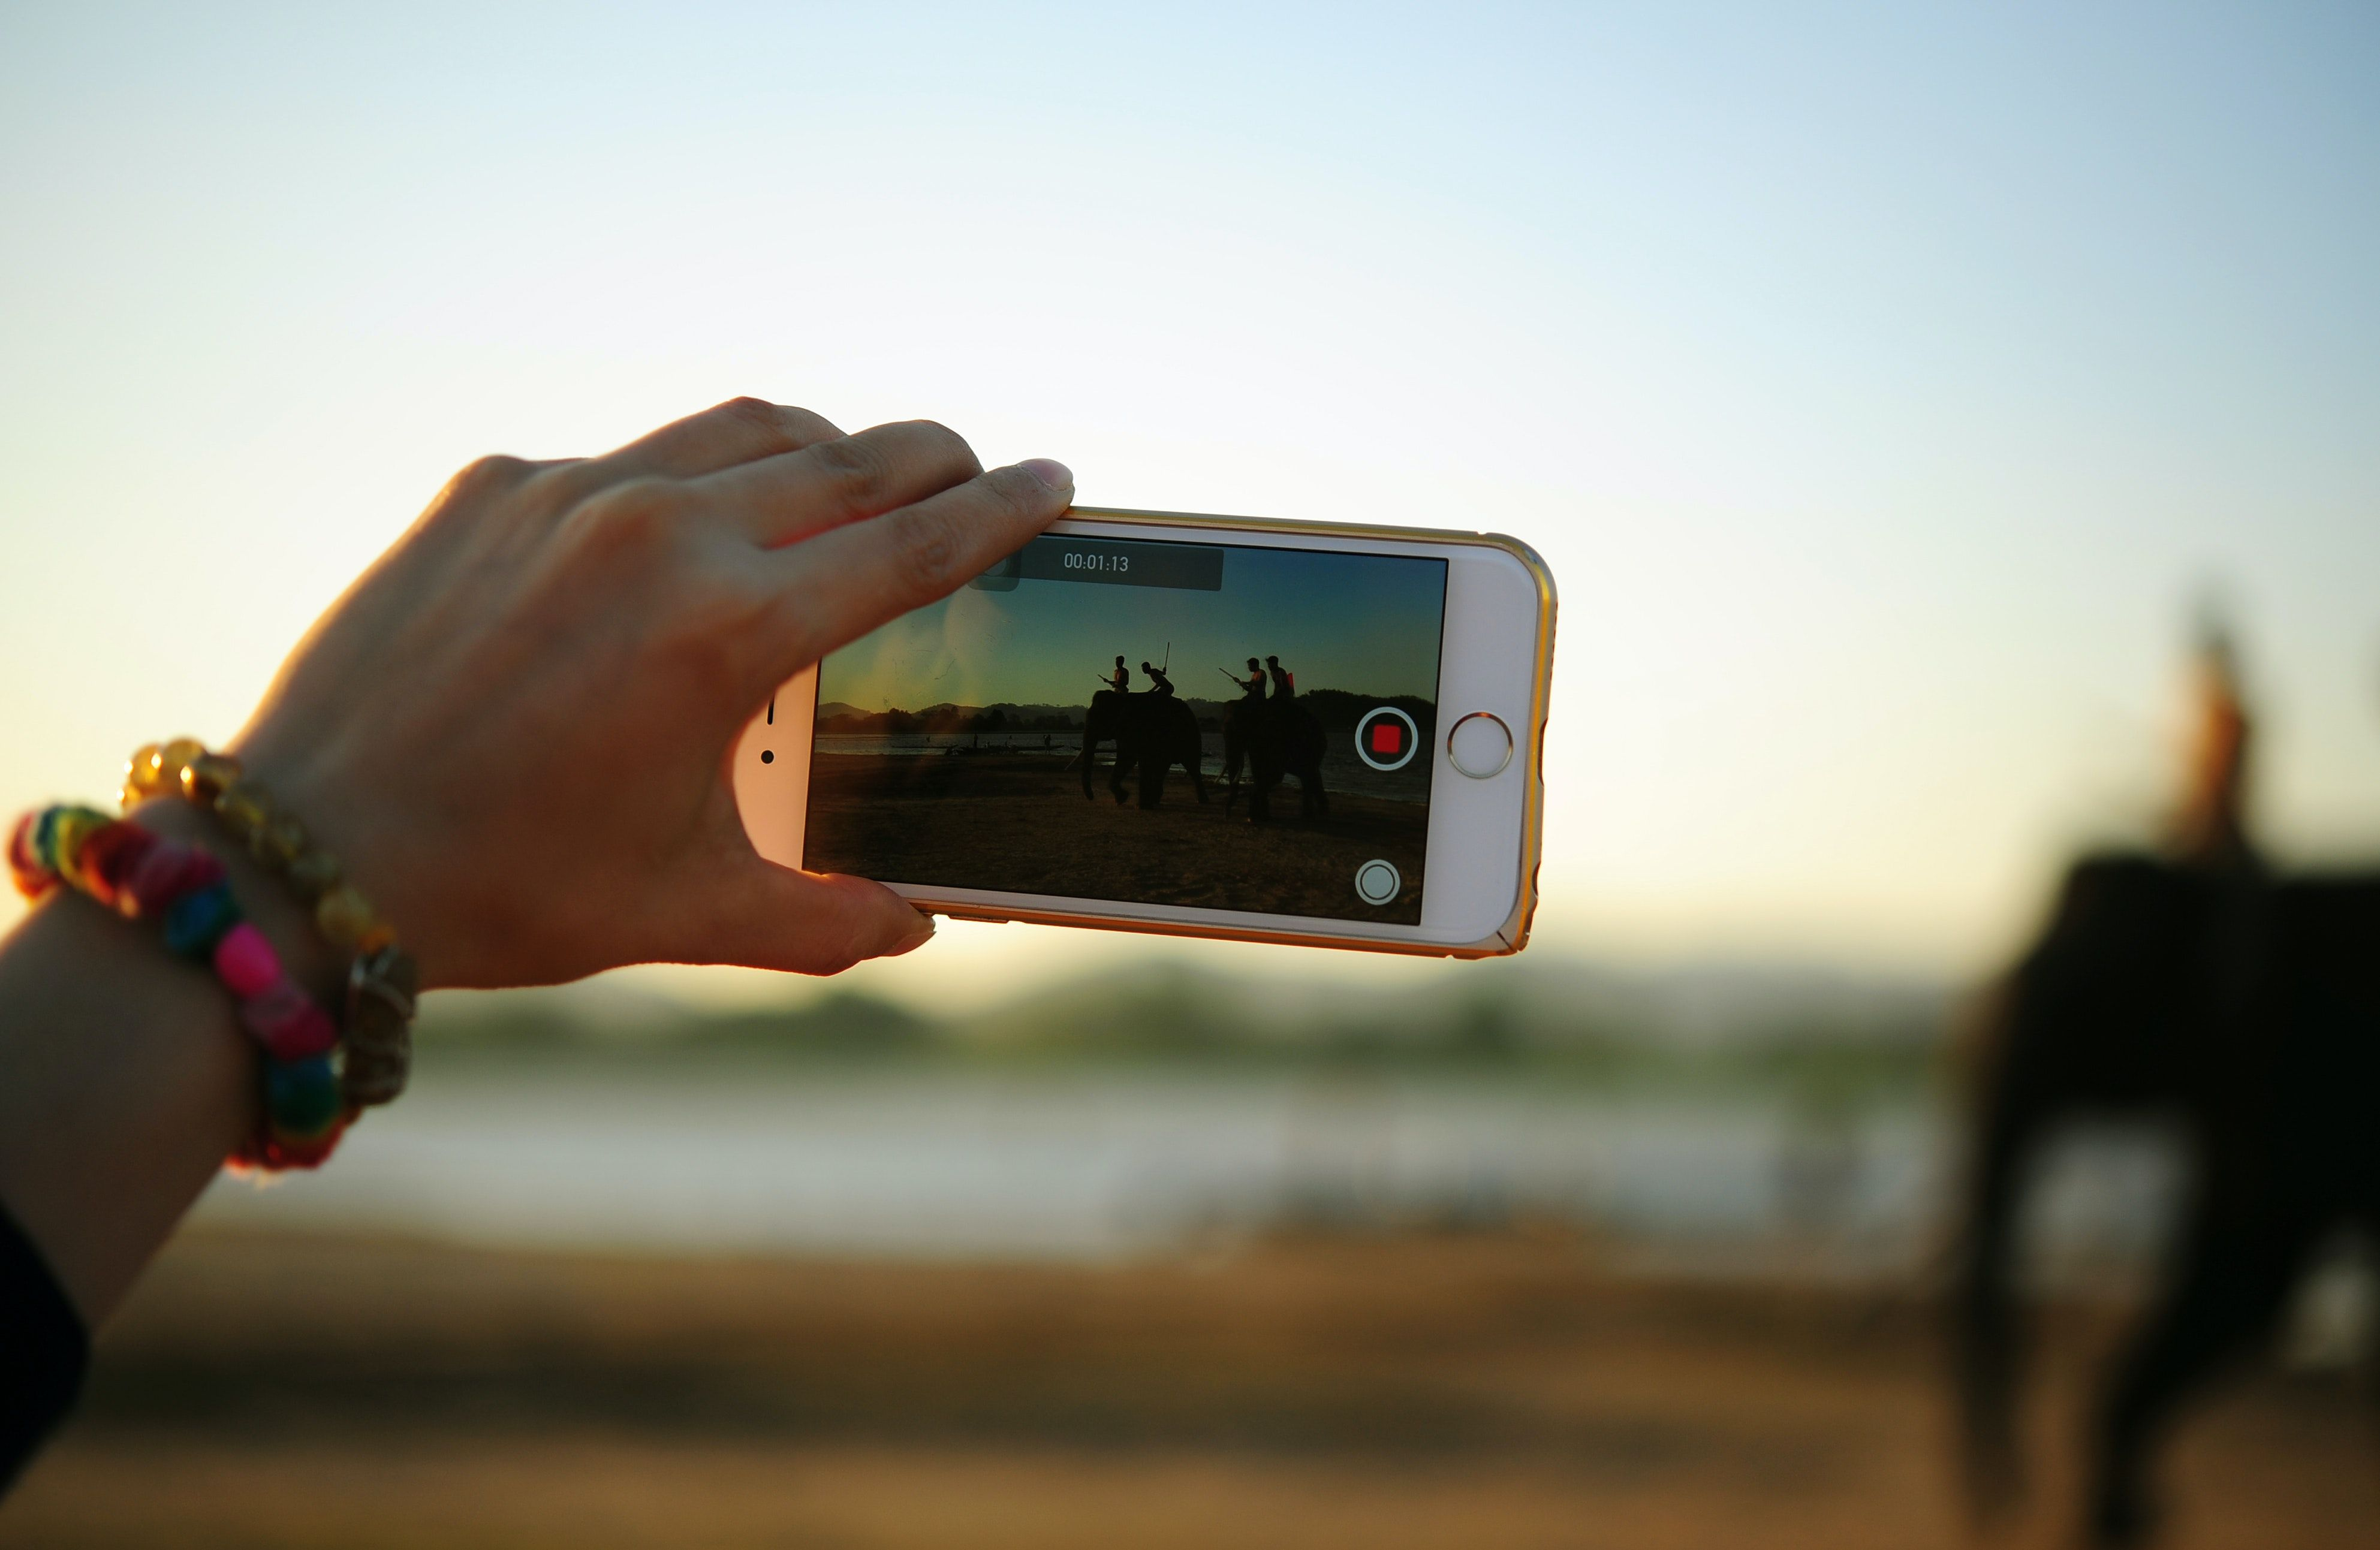 Person holding up a mobile phone to take a photo